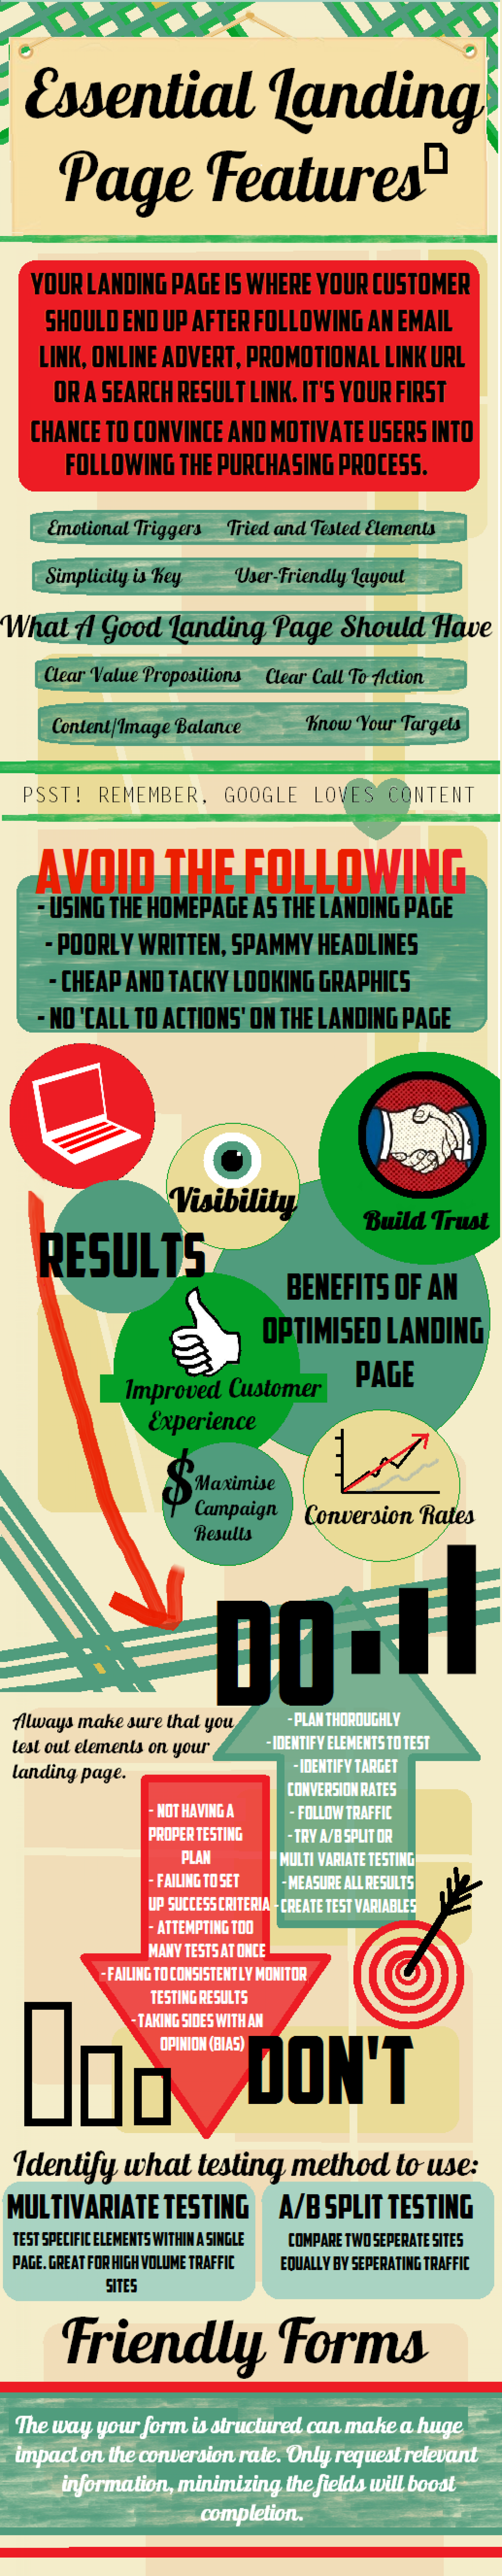 Essential Landing Page Features Infographic